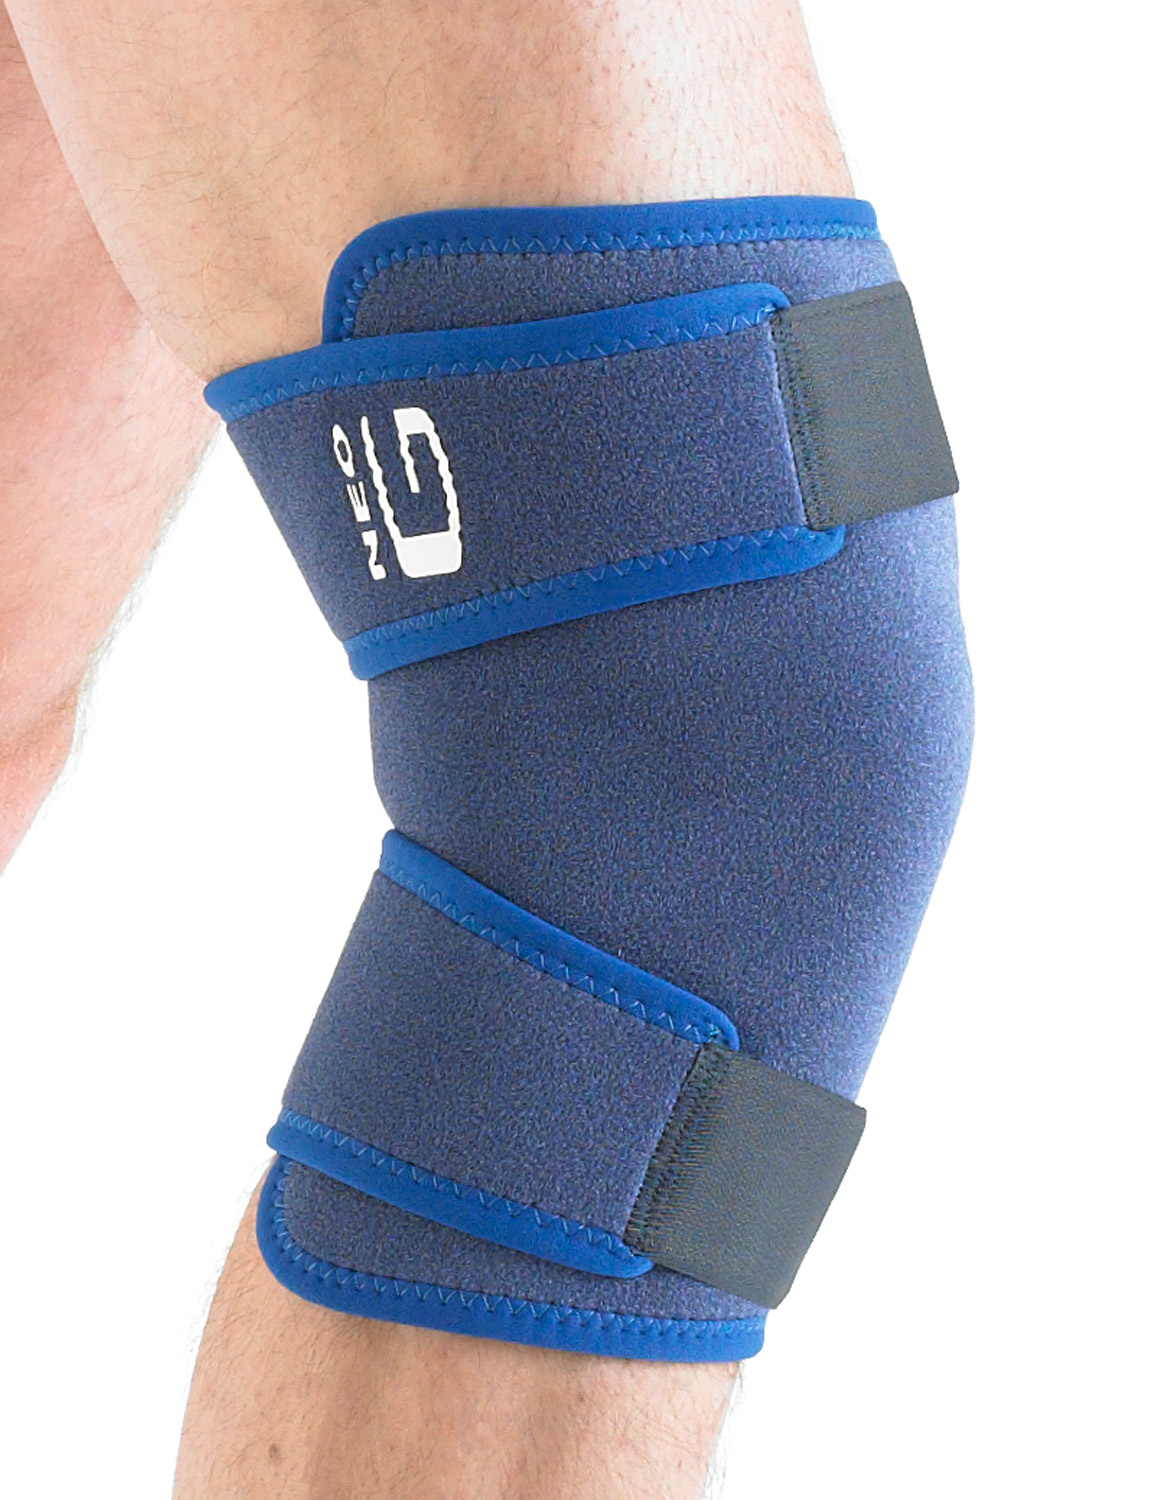 884 - CLOSED KNEE SUPPORT  provides compression, support and warming relief to the knee complex without restricting movement.